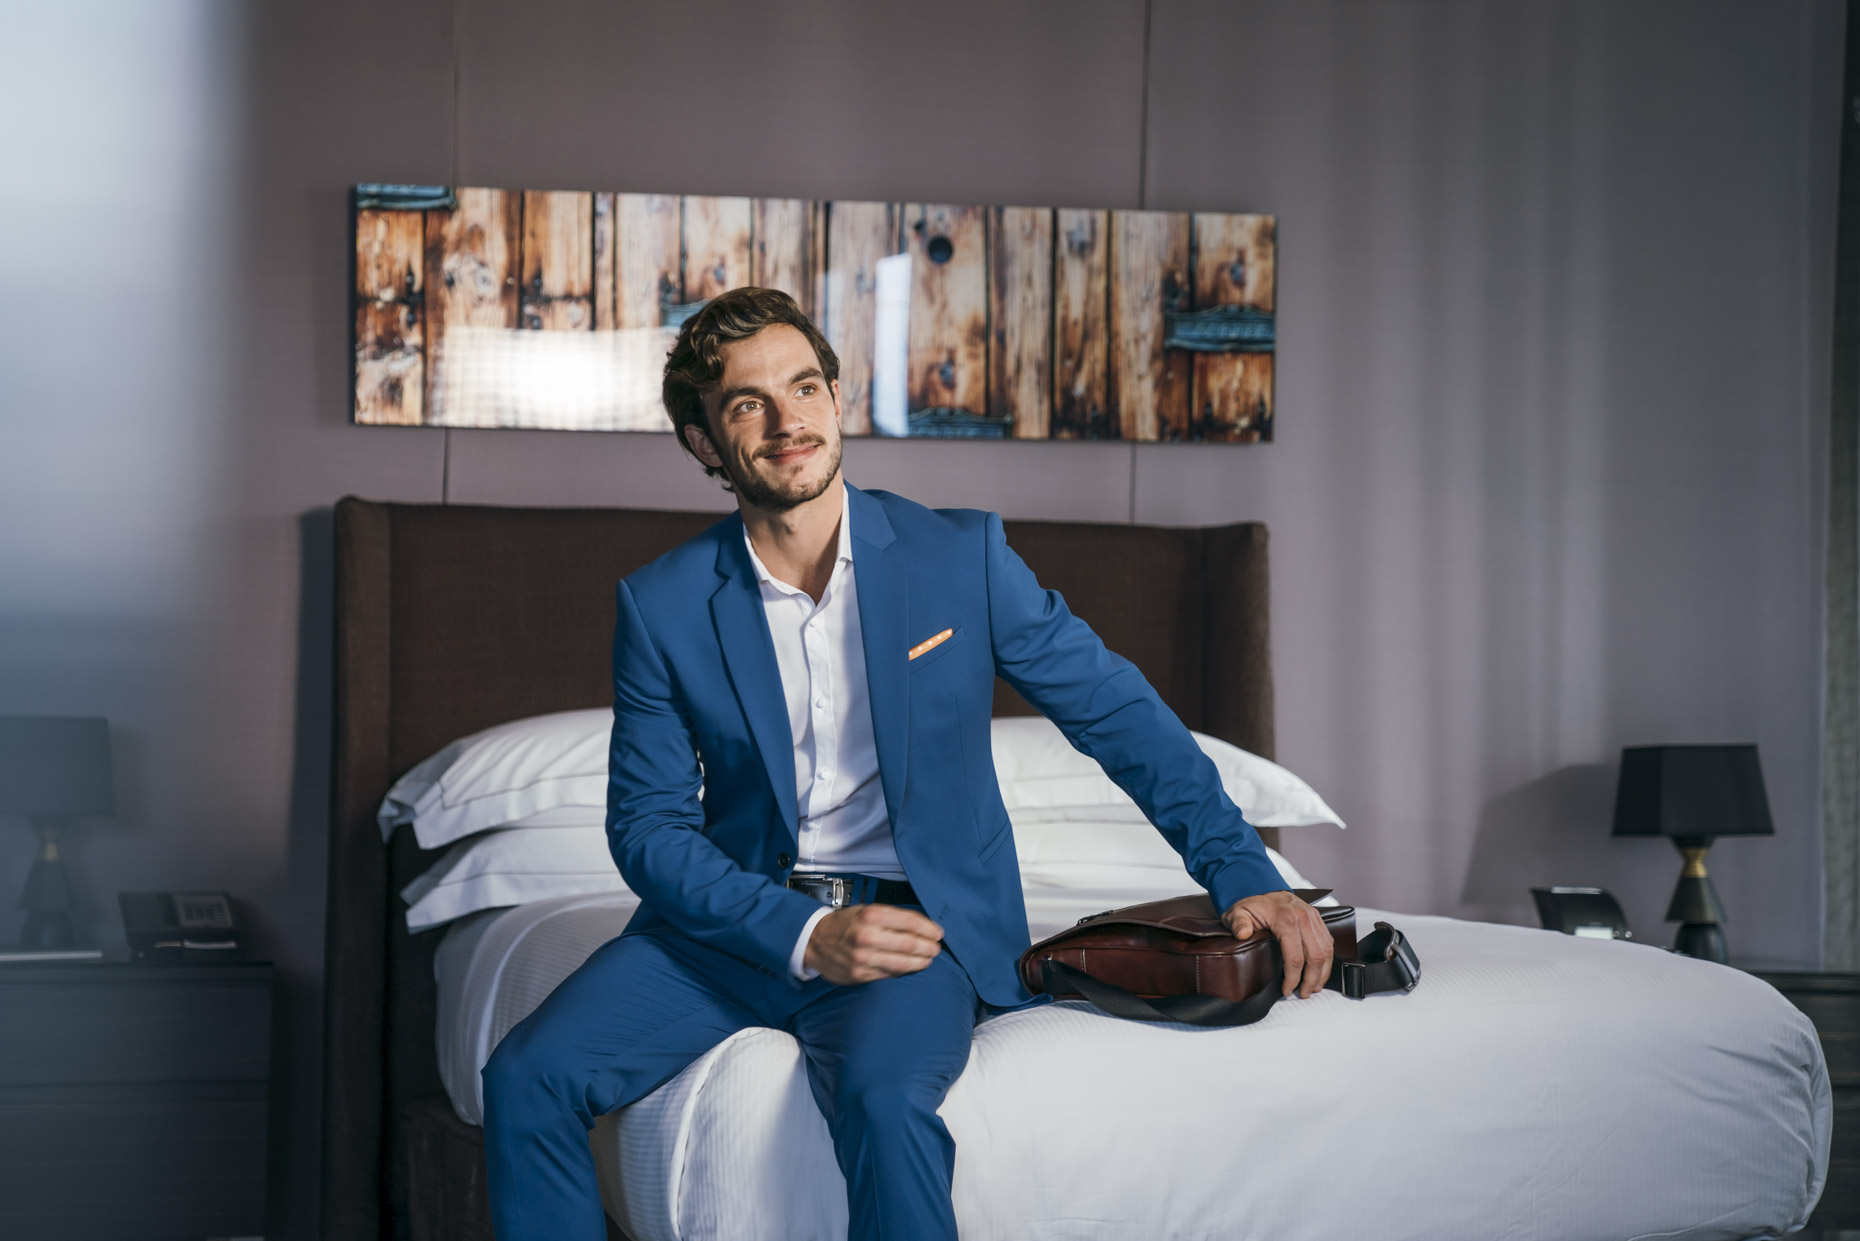 Business man sitting on bed in Hilton hotel with briefcase